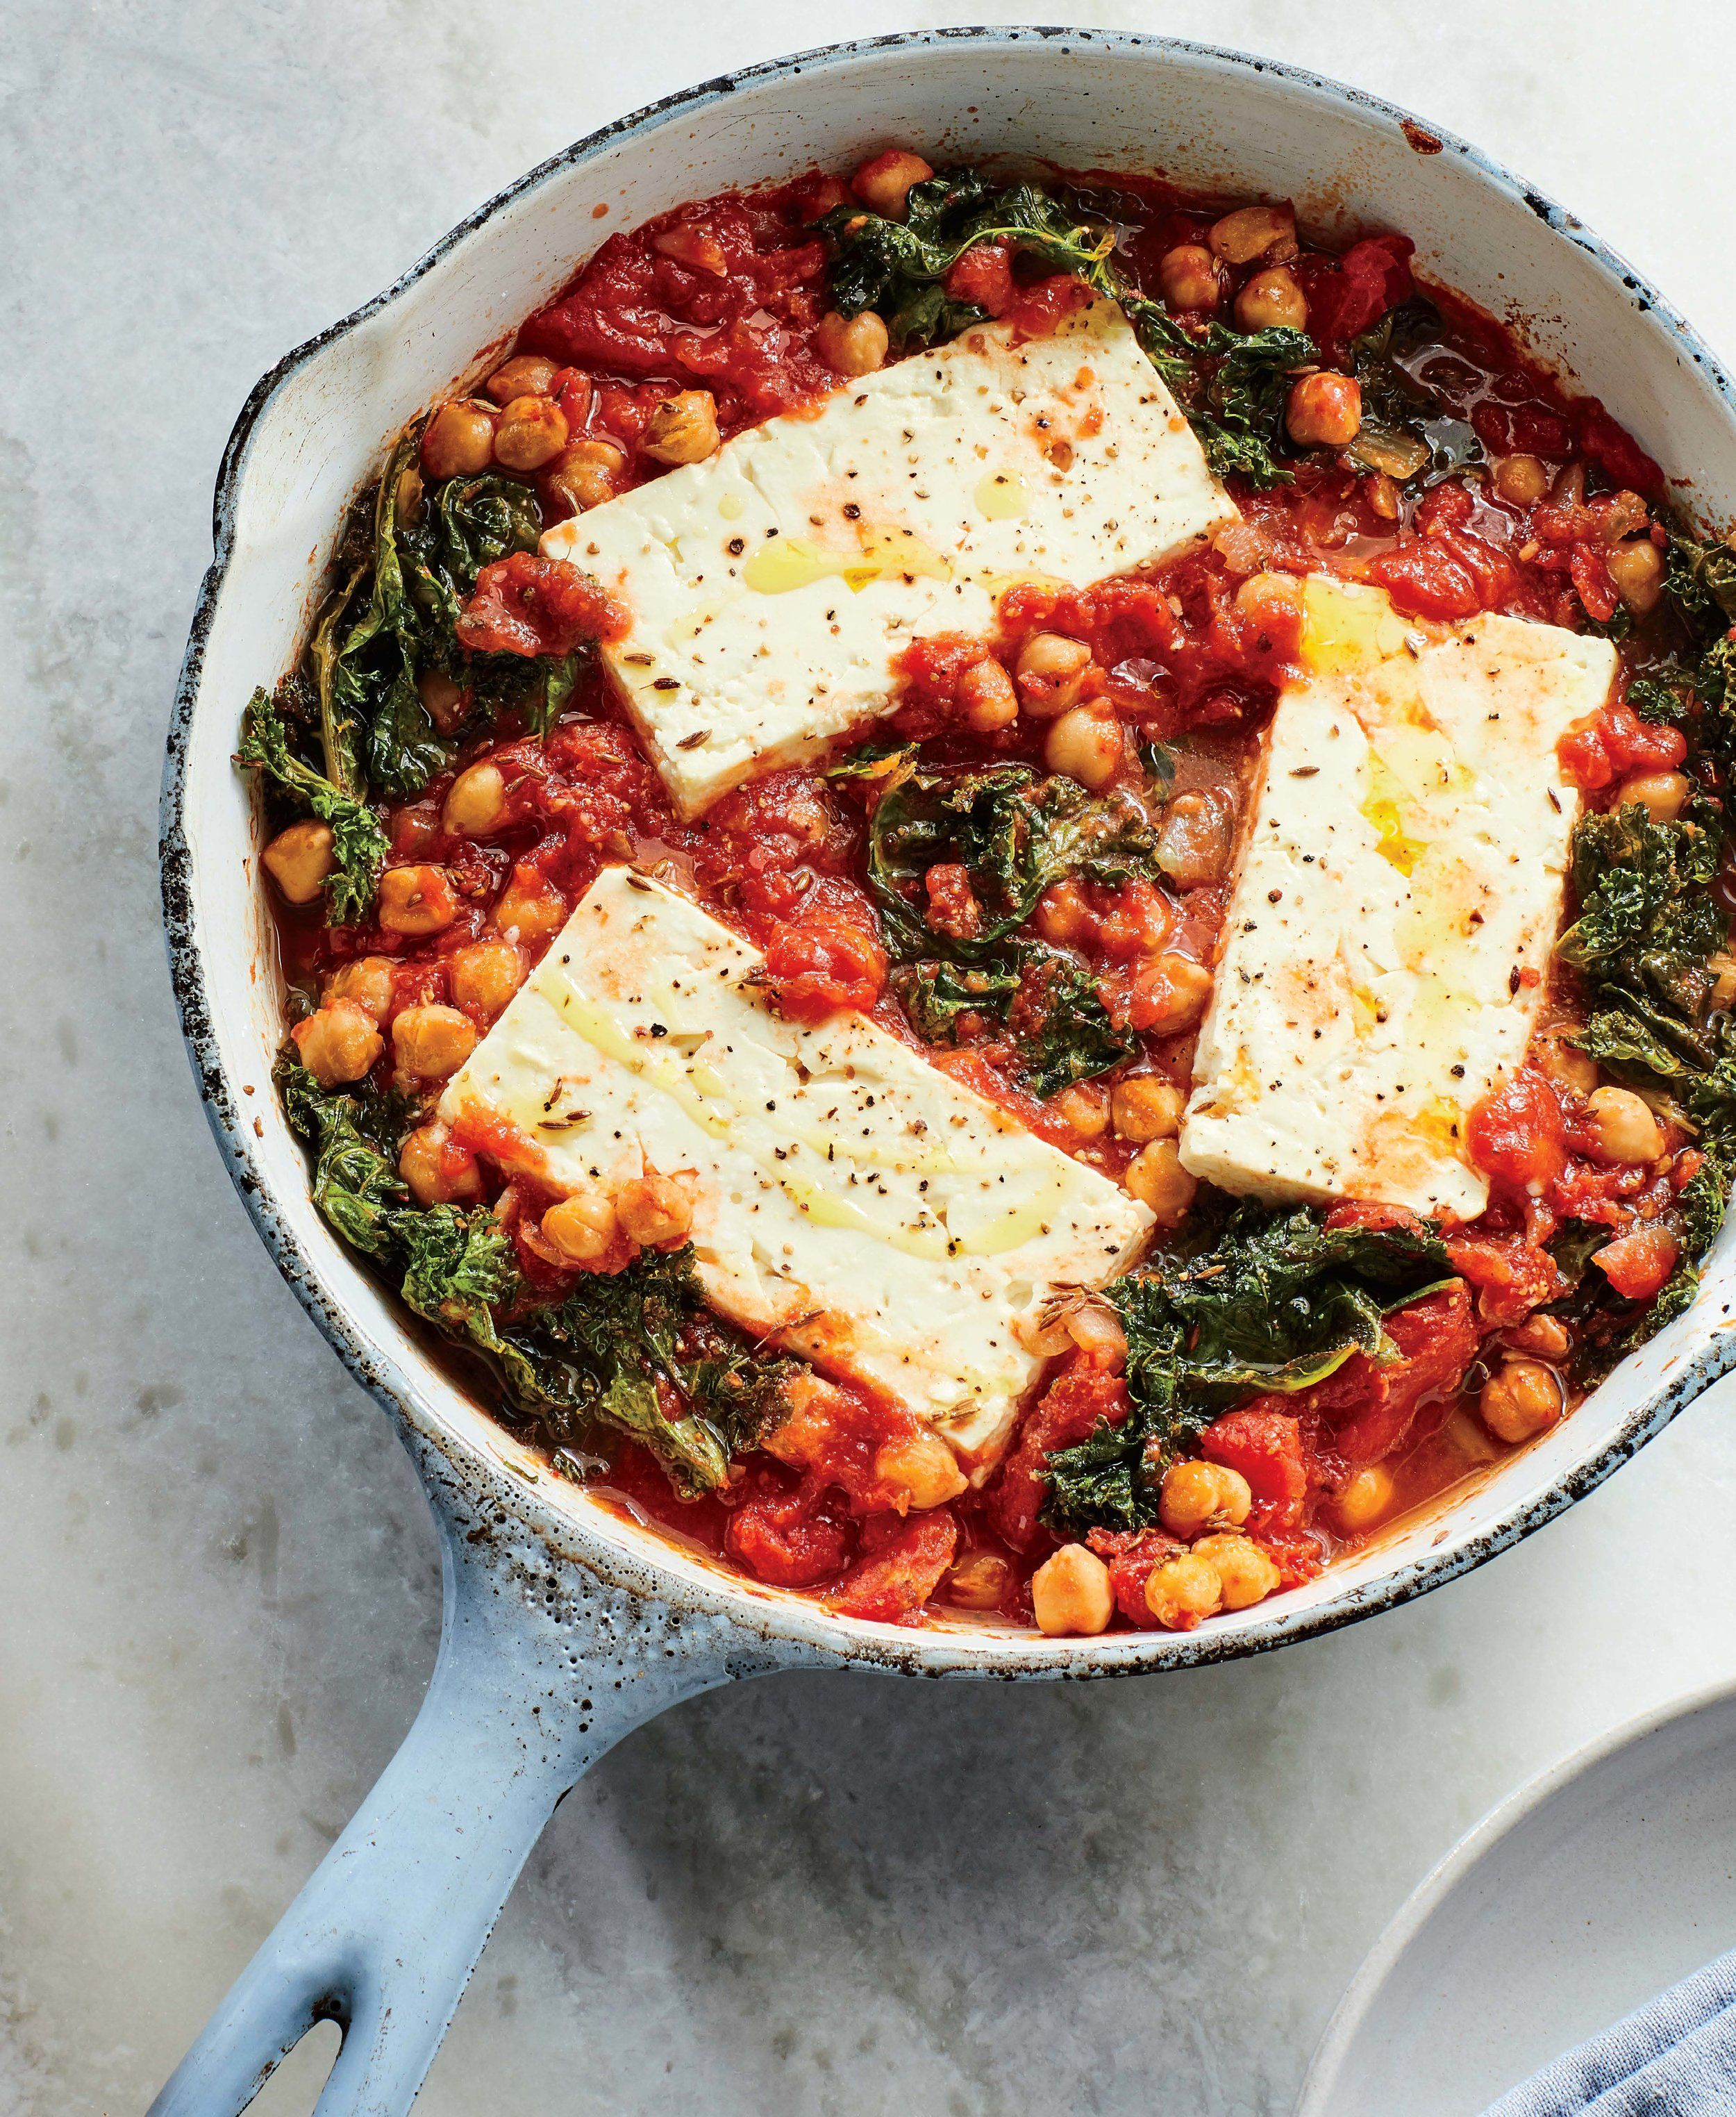 David Tamarkin's Baked Feta with Chickpeas and Greens #foodsides